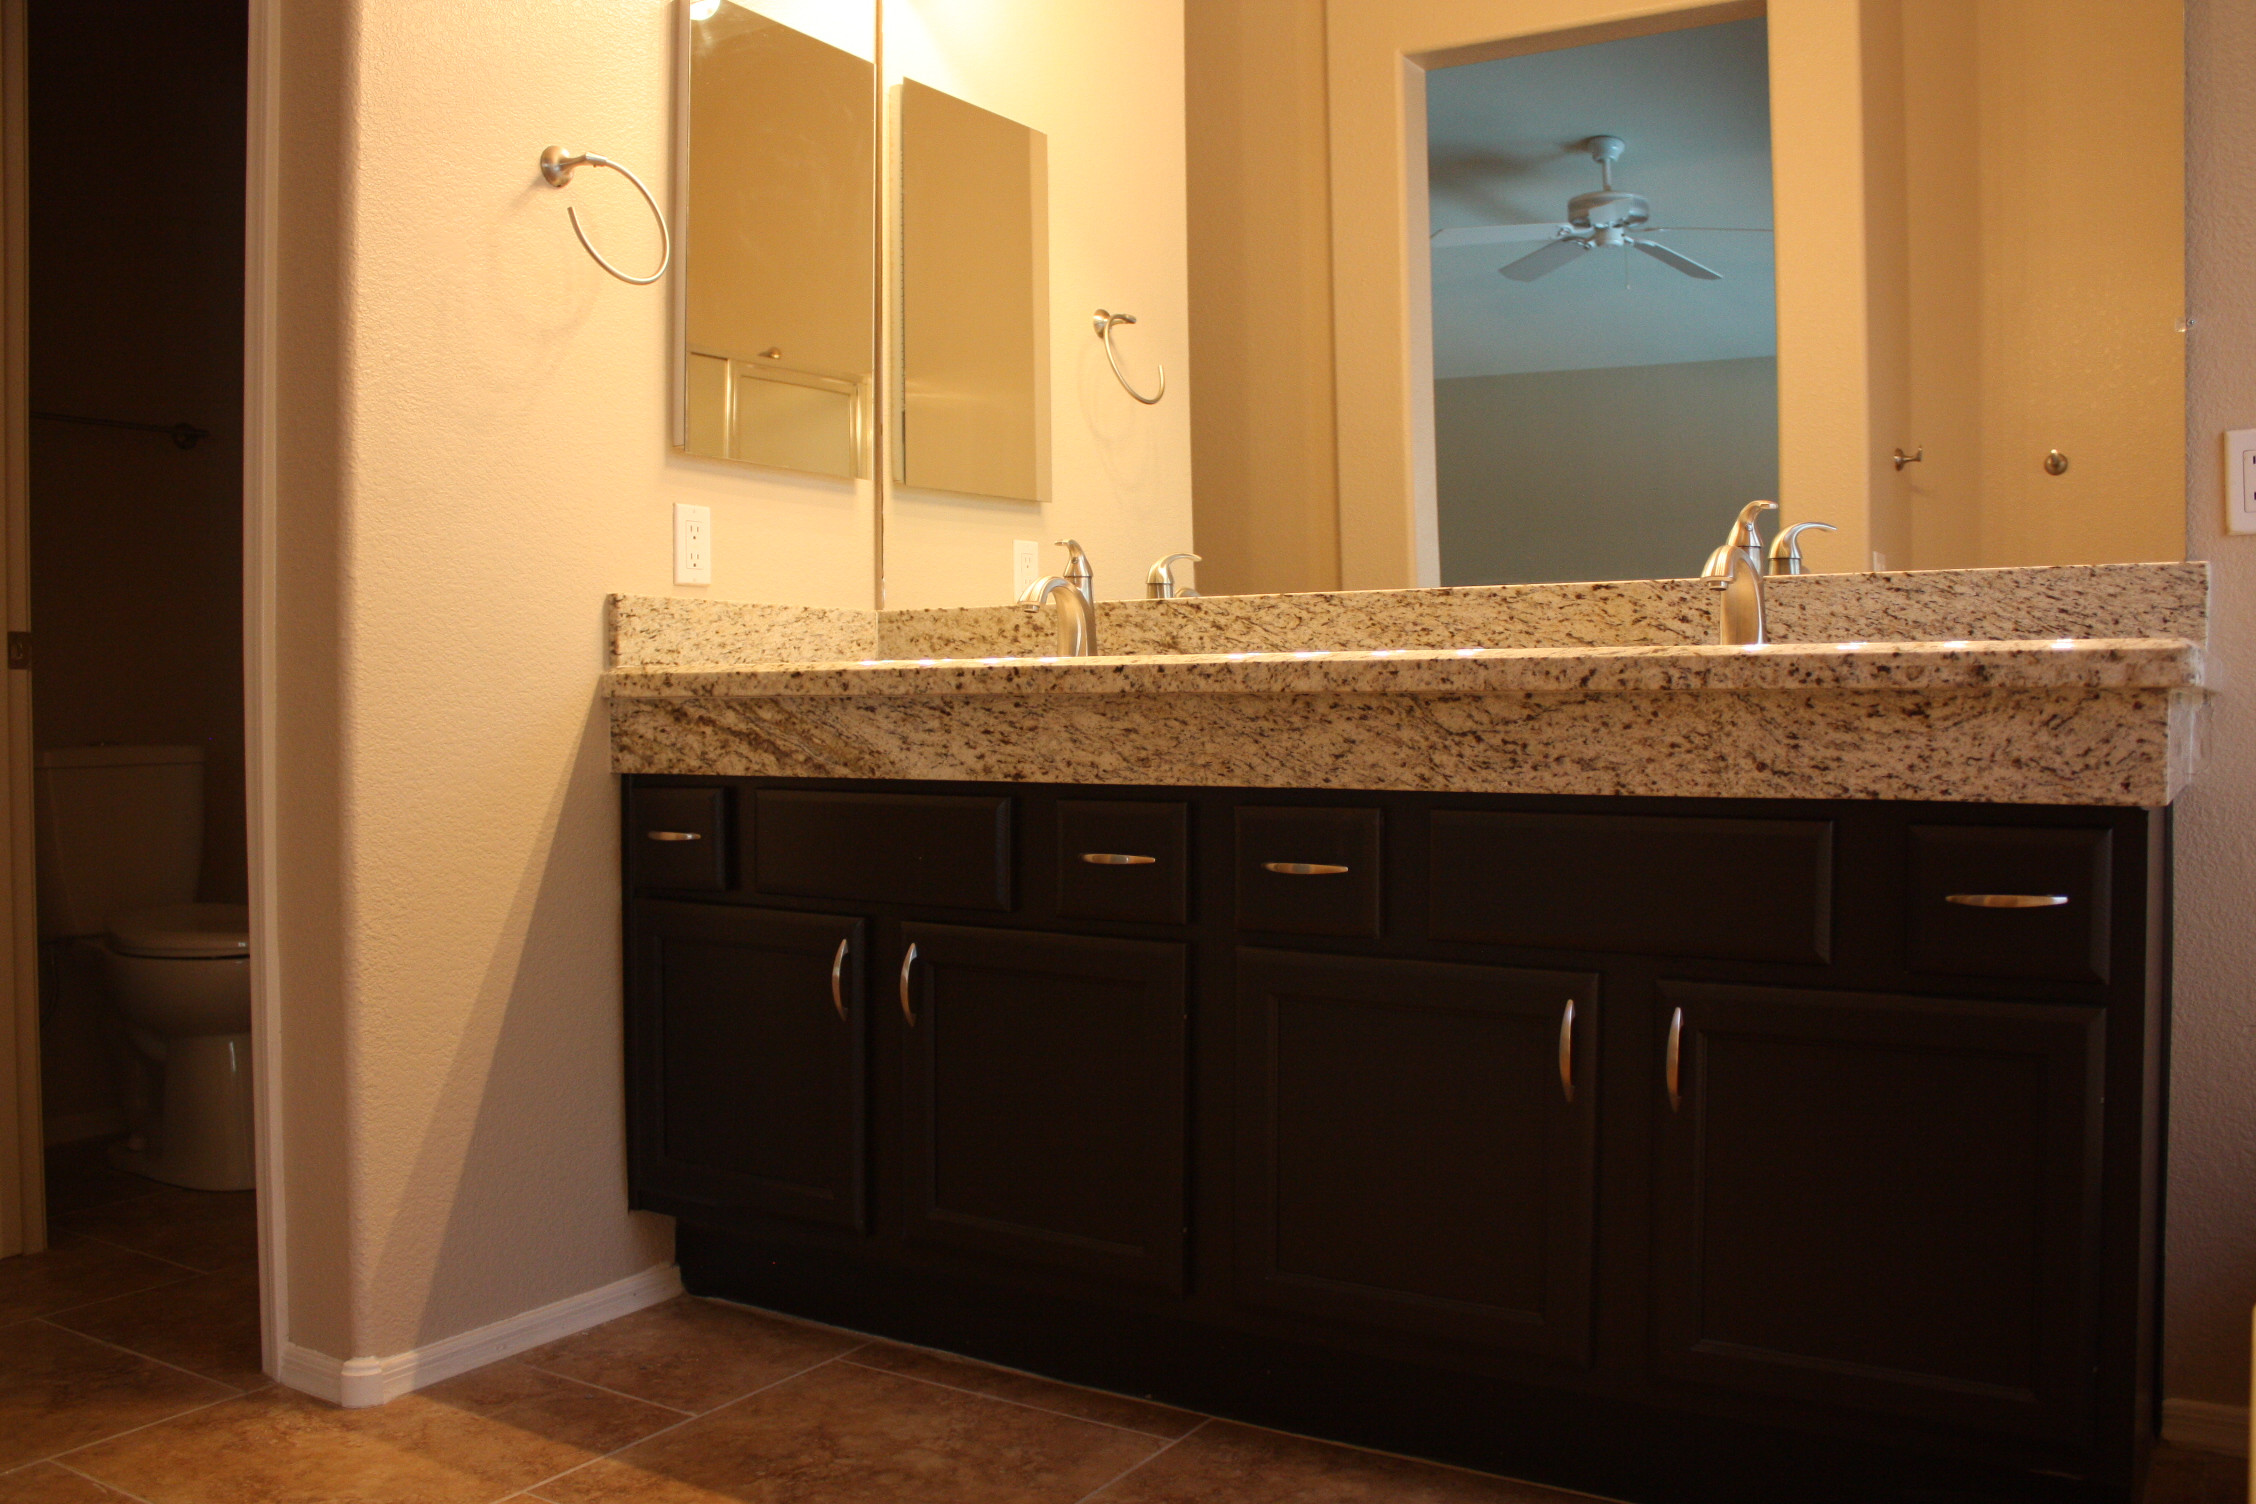 Best ideas about Bathroom Vanity Height . Save or Pin Raise the height of your bathroom counters Now.